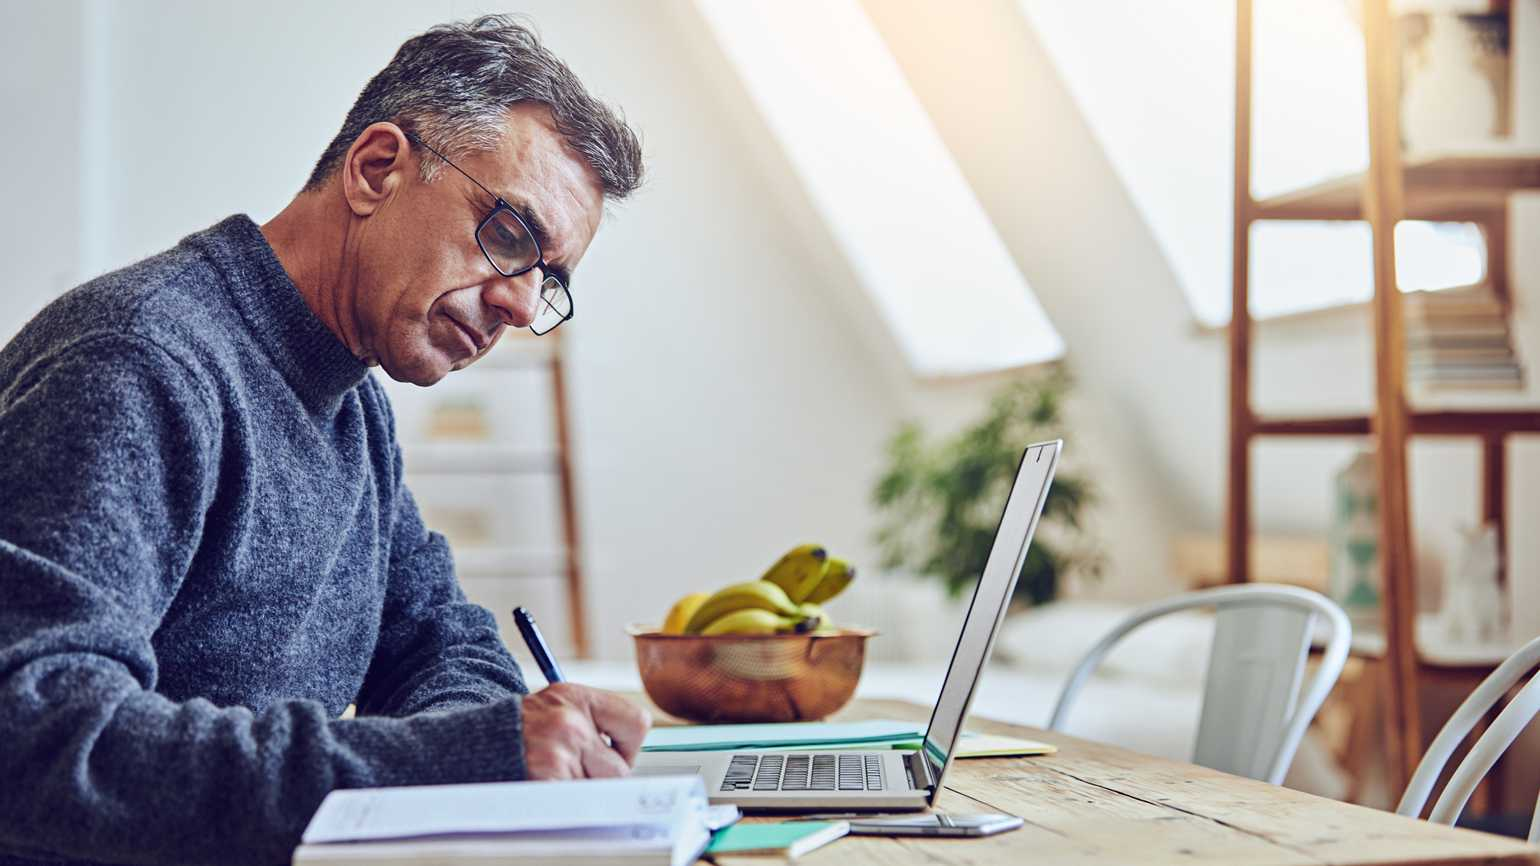 A male caregiver searching online and taking notes.